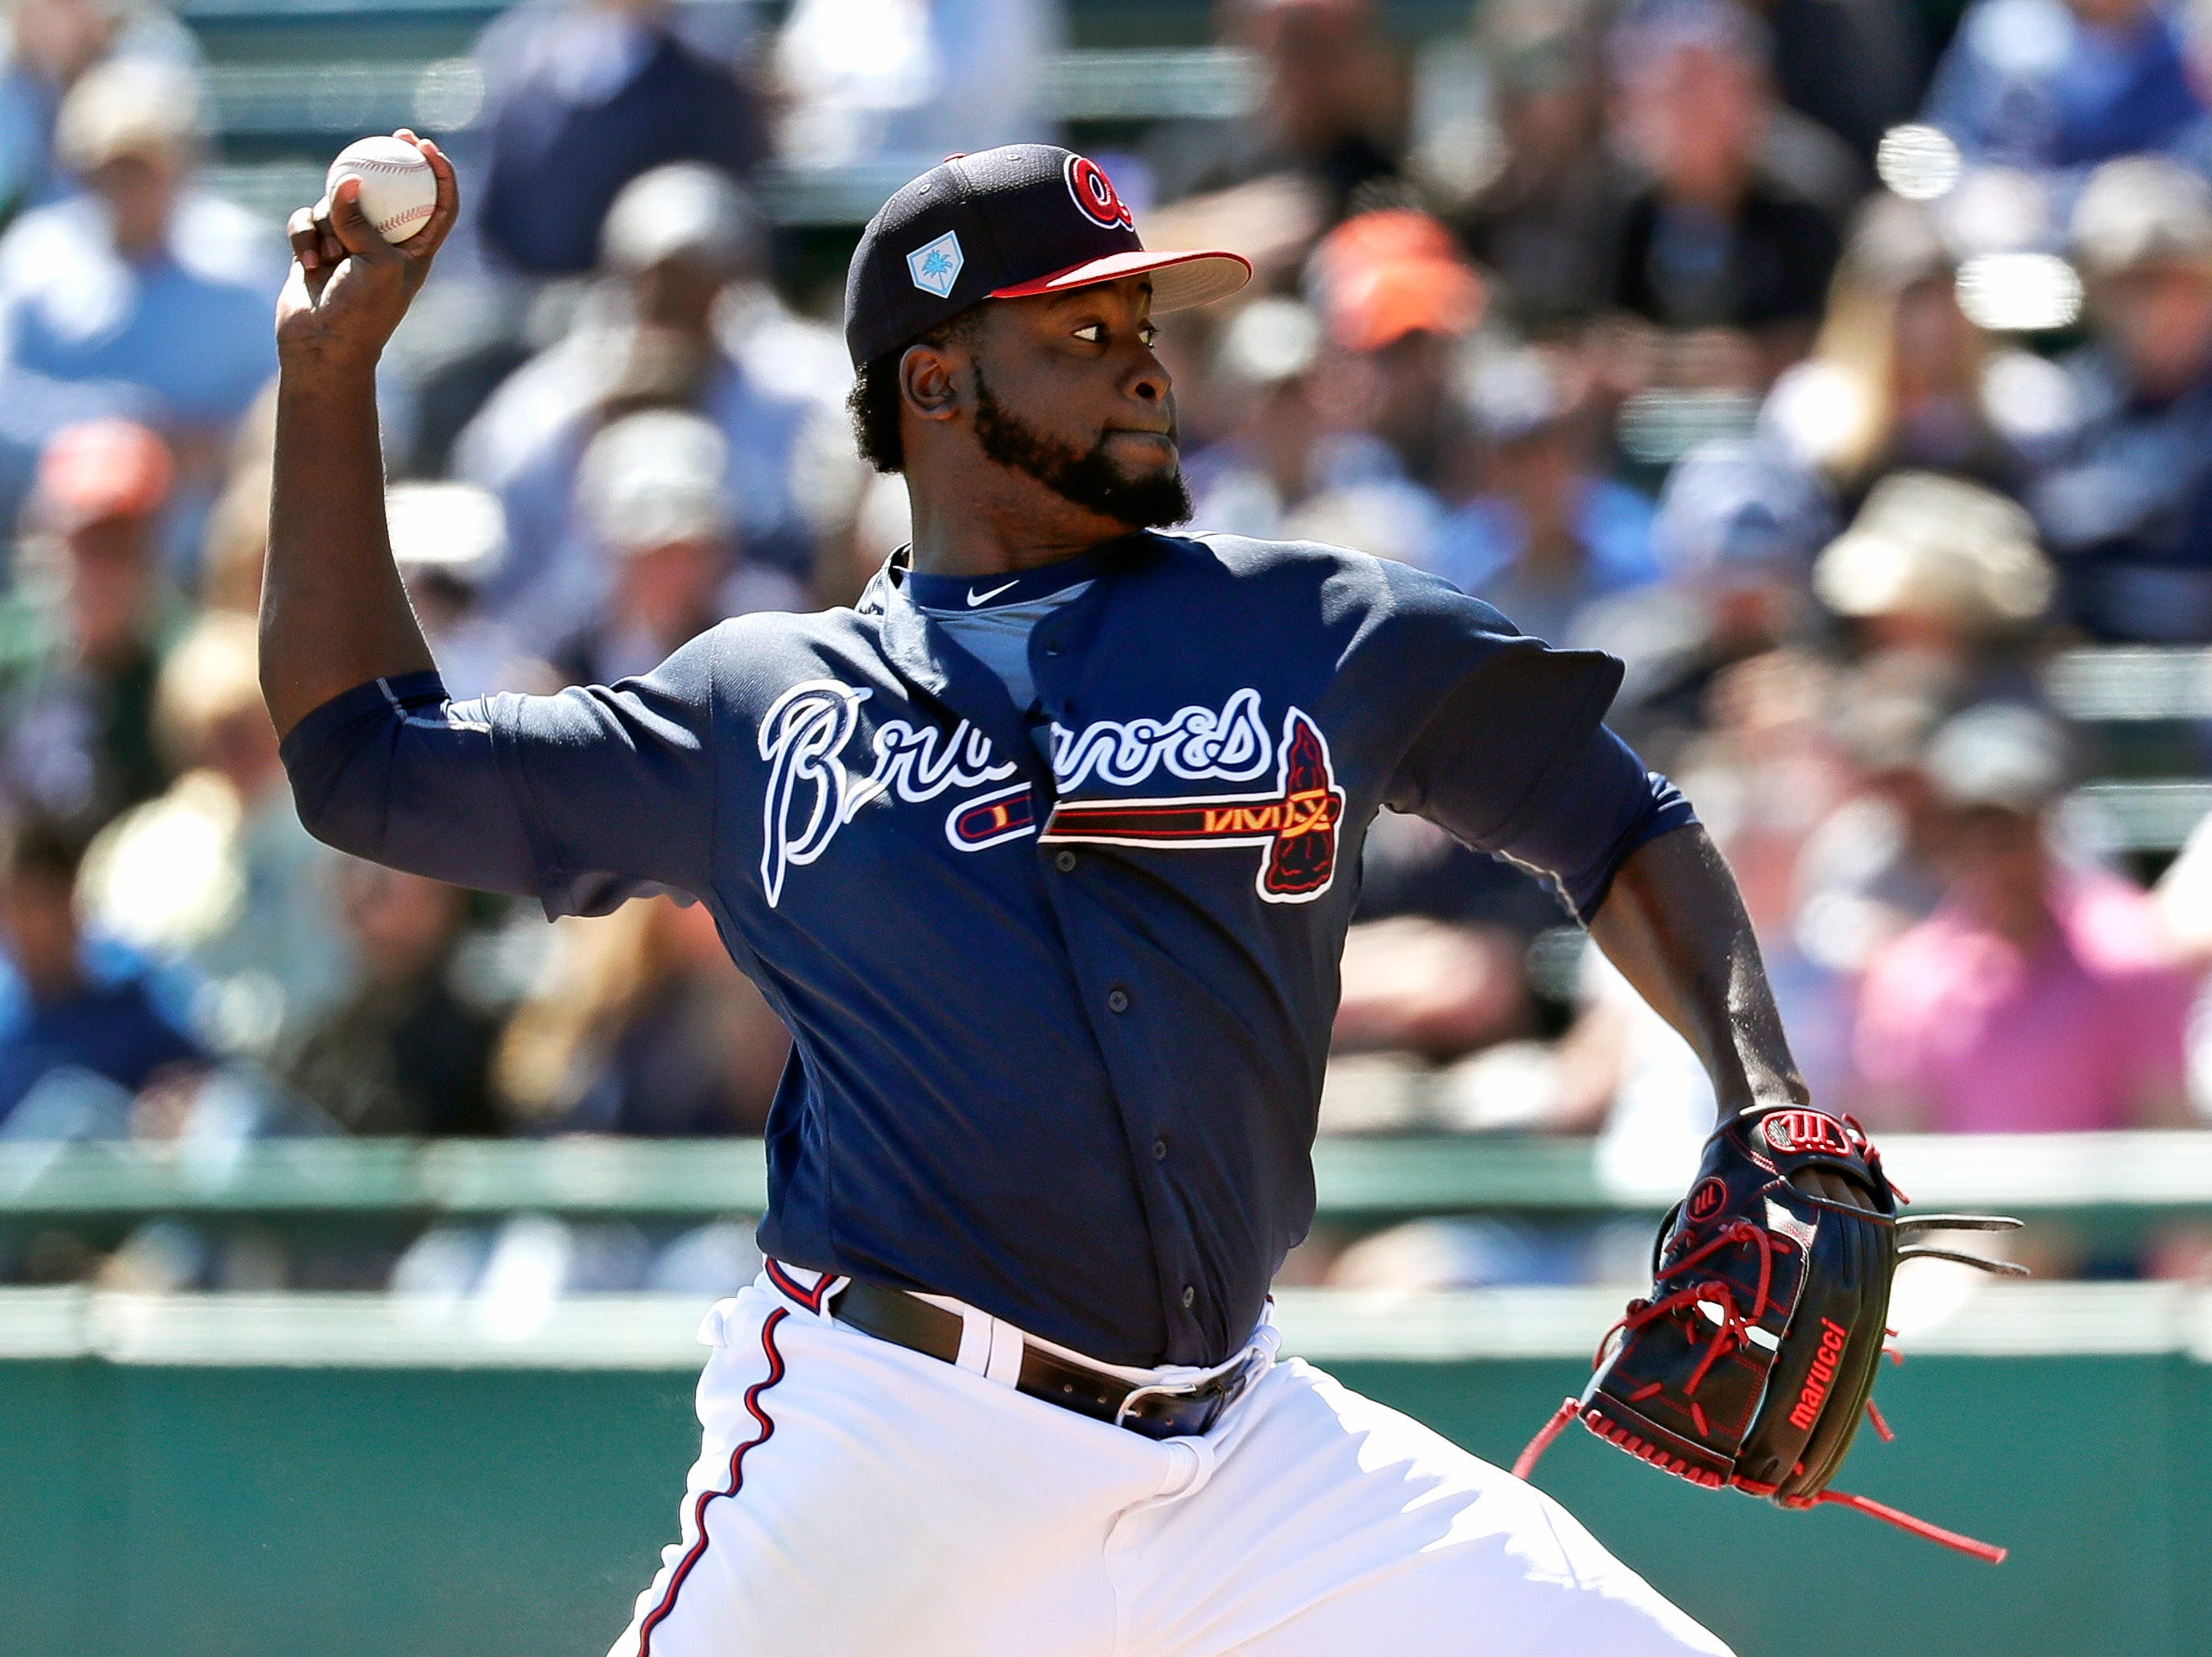 Atlanta Braves relief pitcher Arodys Vizcaino throws against the Detroit Tigers in the fourth inning of a spring baseball exhibition game, Wednesday, March 6, 2019, in Kissimmee, Fla.